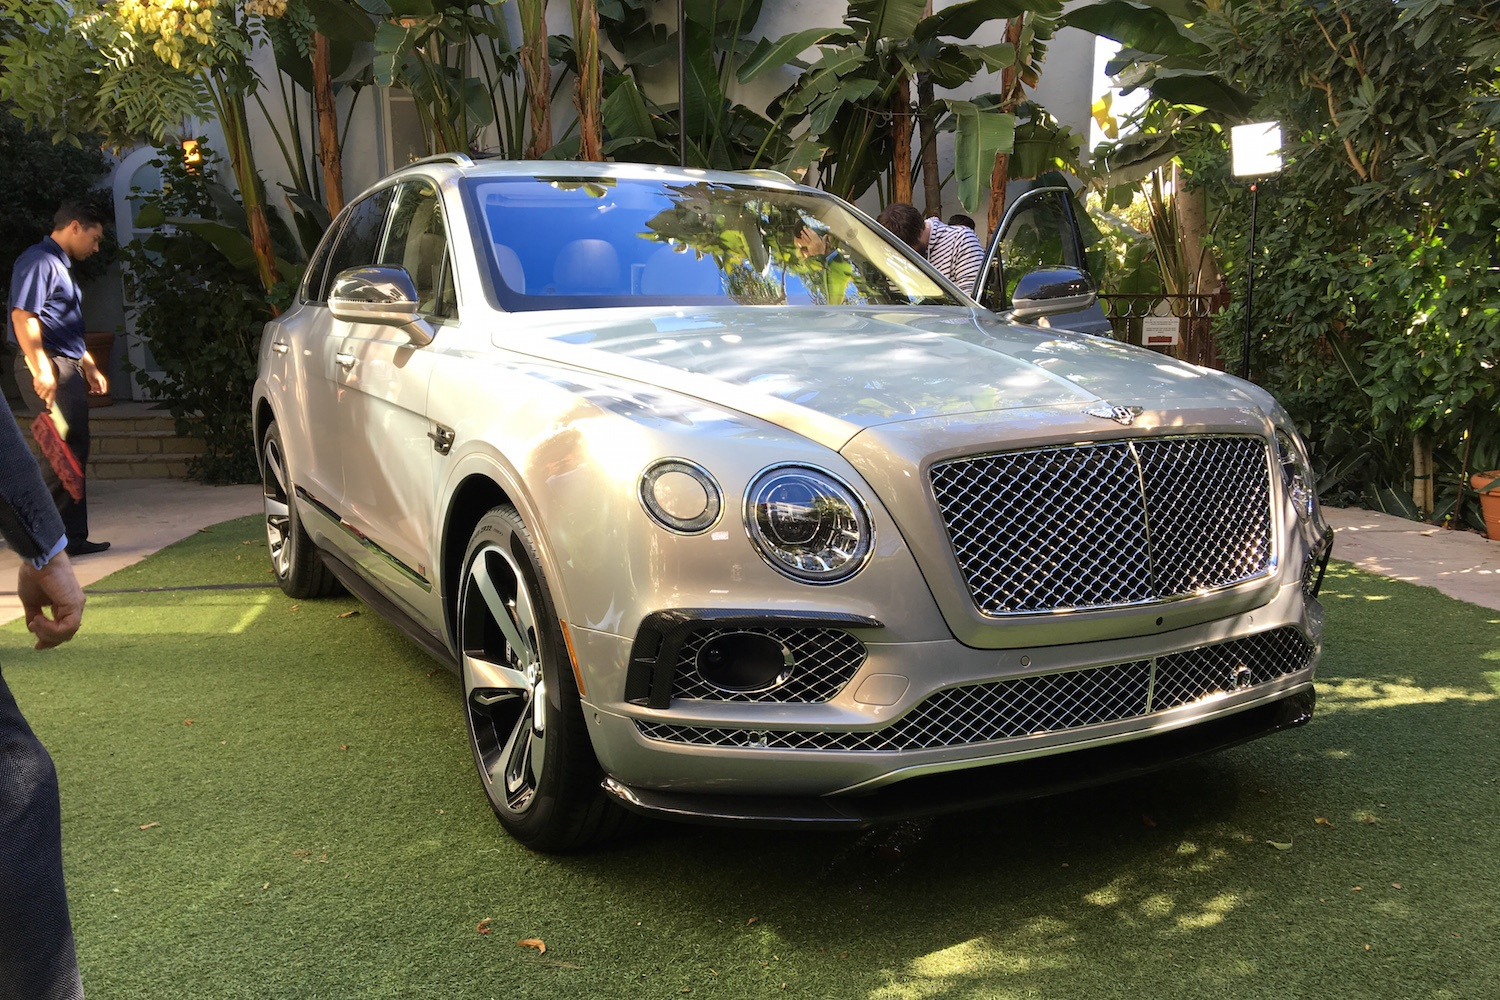 Bentley will blow the doors off nonexistent rivals with a super coupe Bentayga & Bentley will blow the doors off nonexistent rivals with a super ... Pezcame.Com